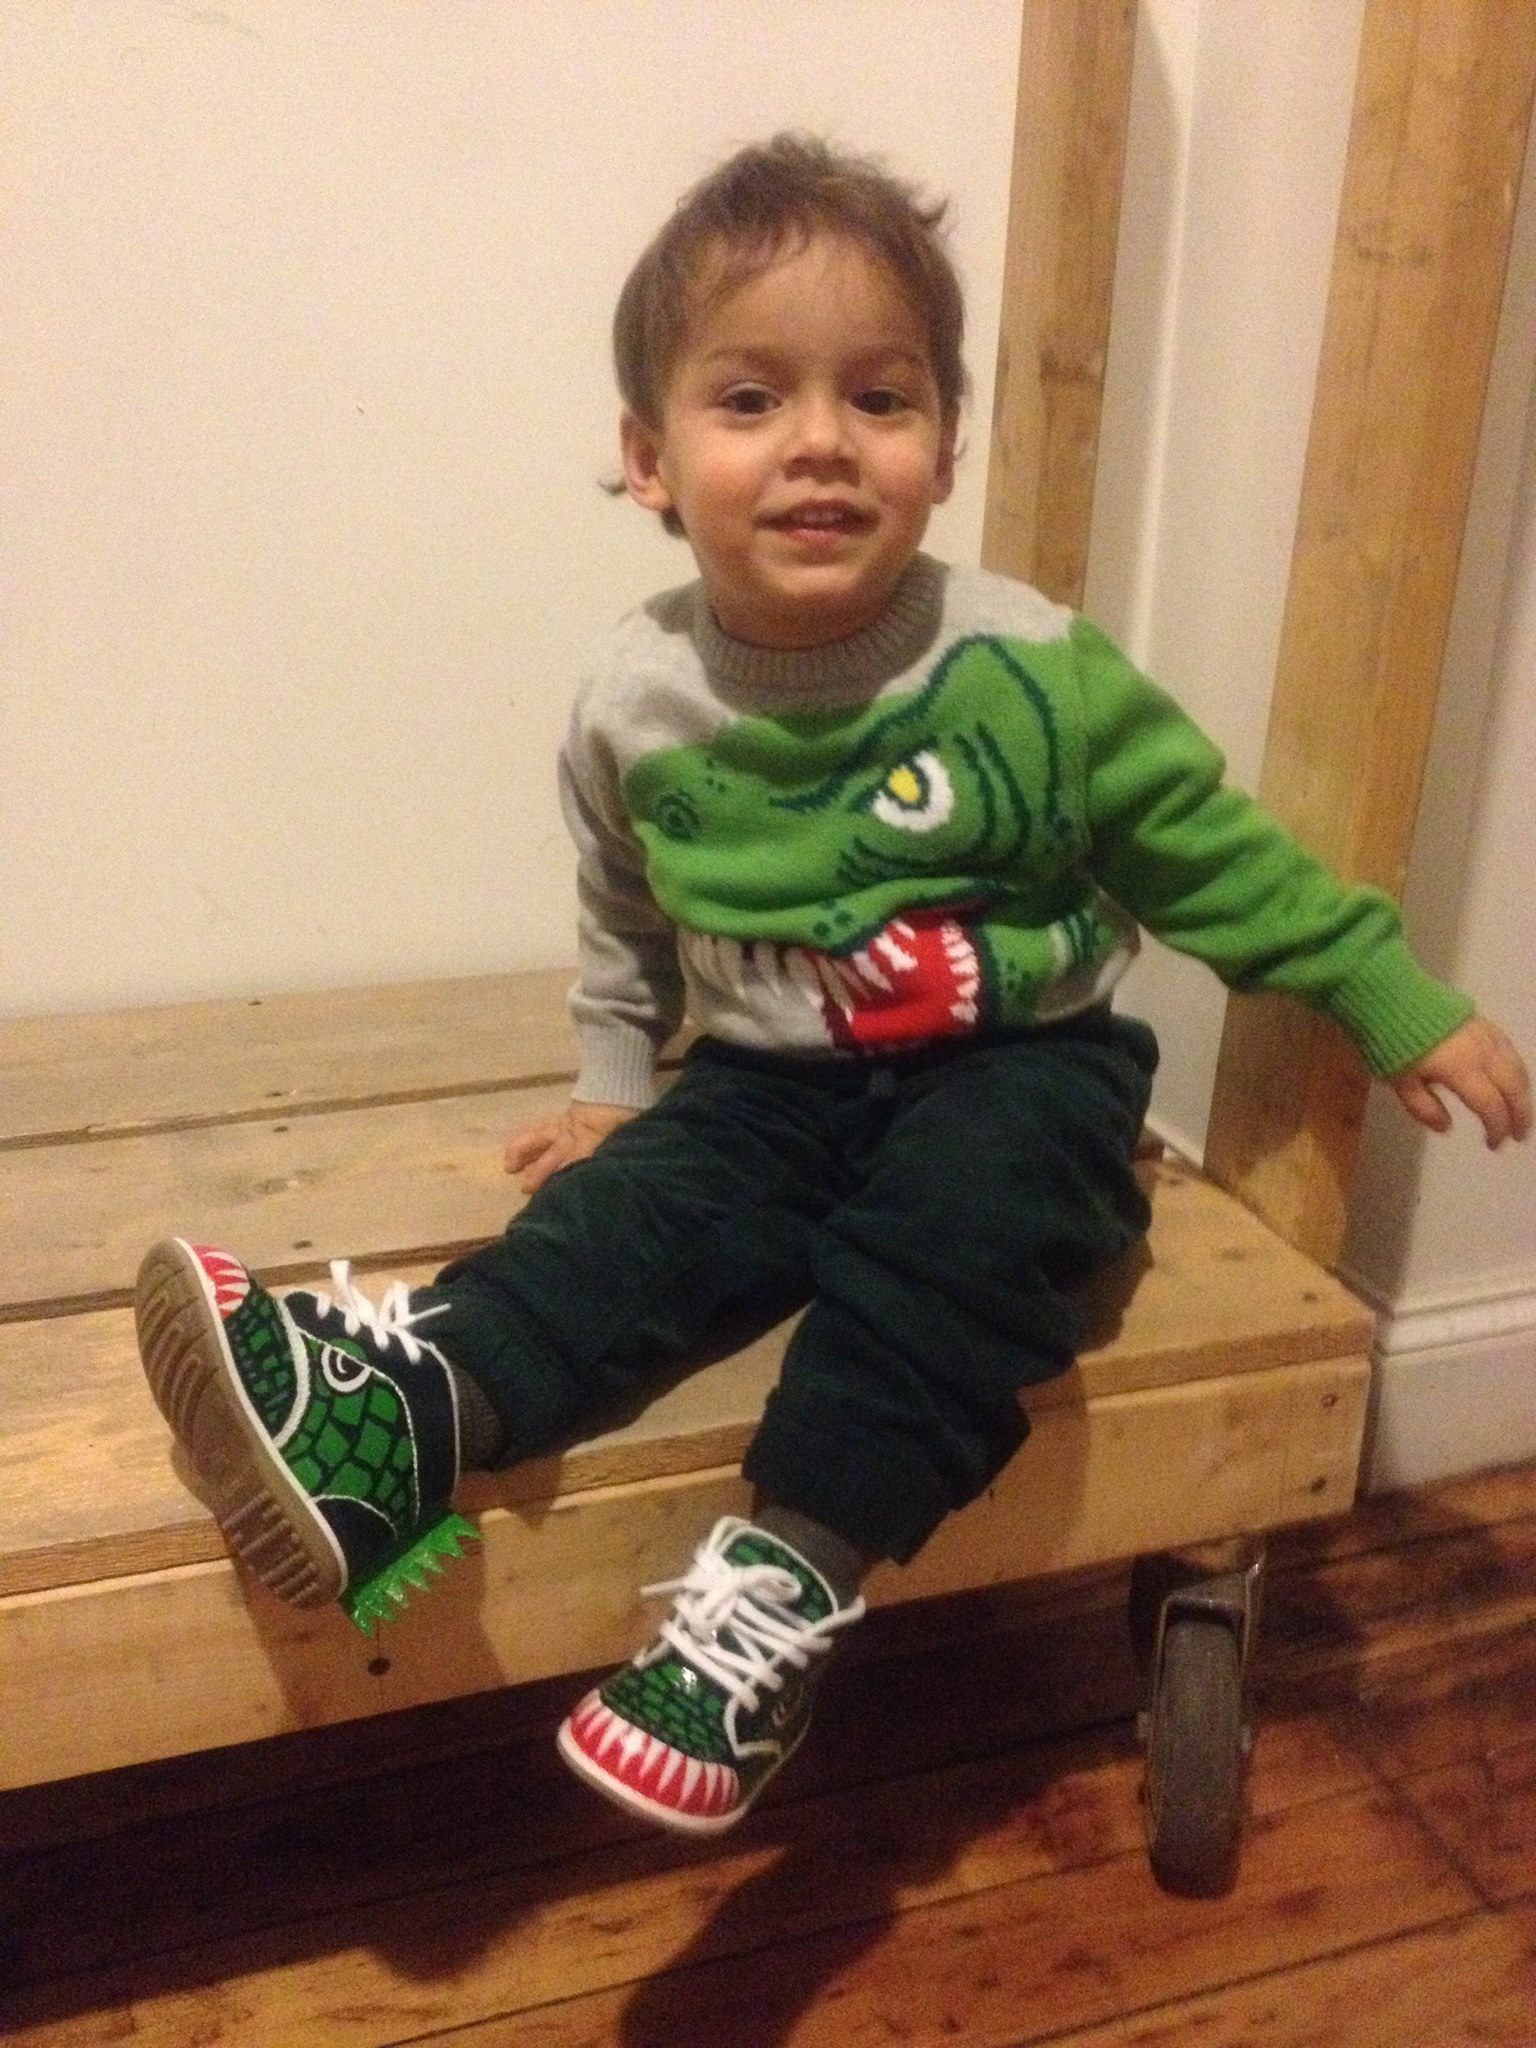 MY NEPHEW NOAH ROCKING HIS DINOSAUR SHOES AND SWEATER!